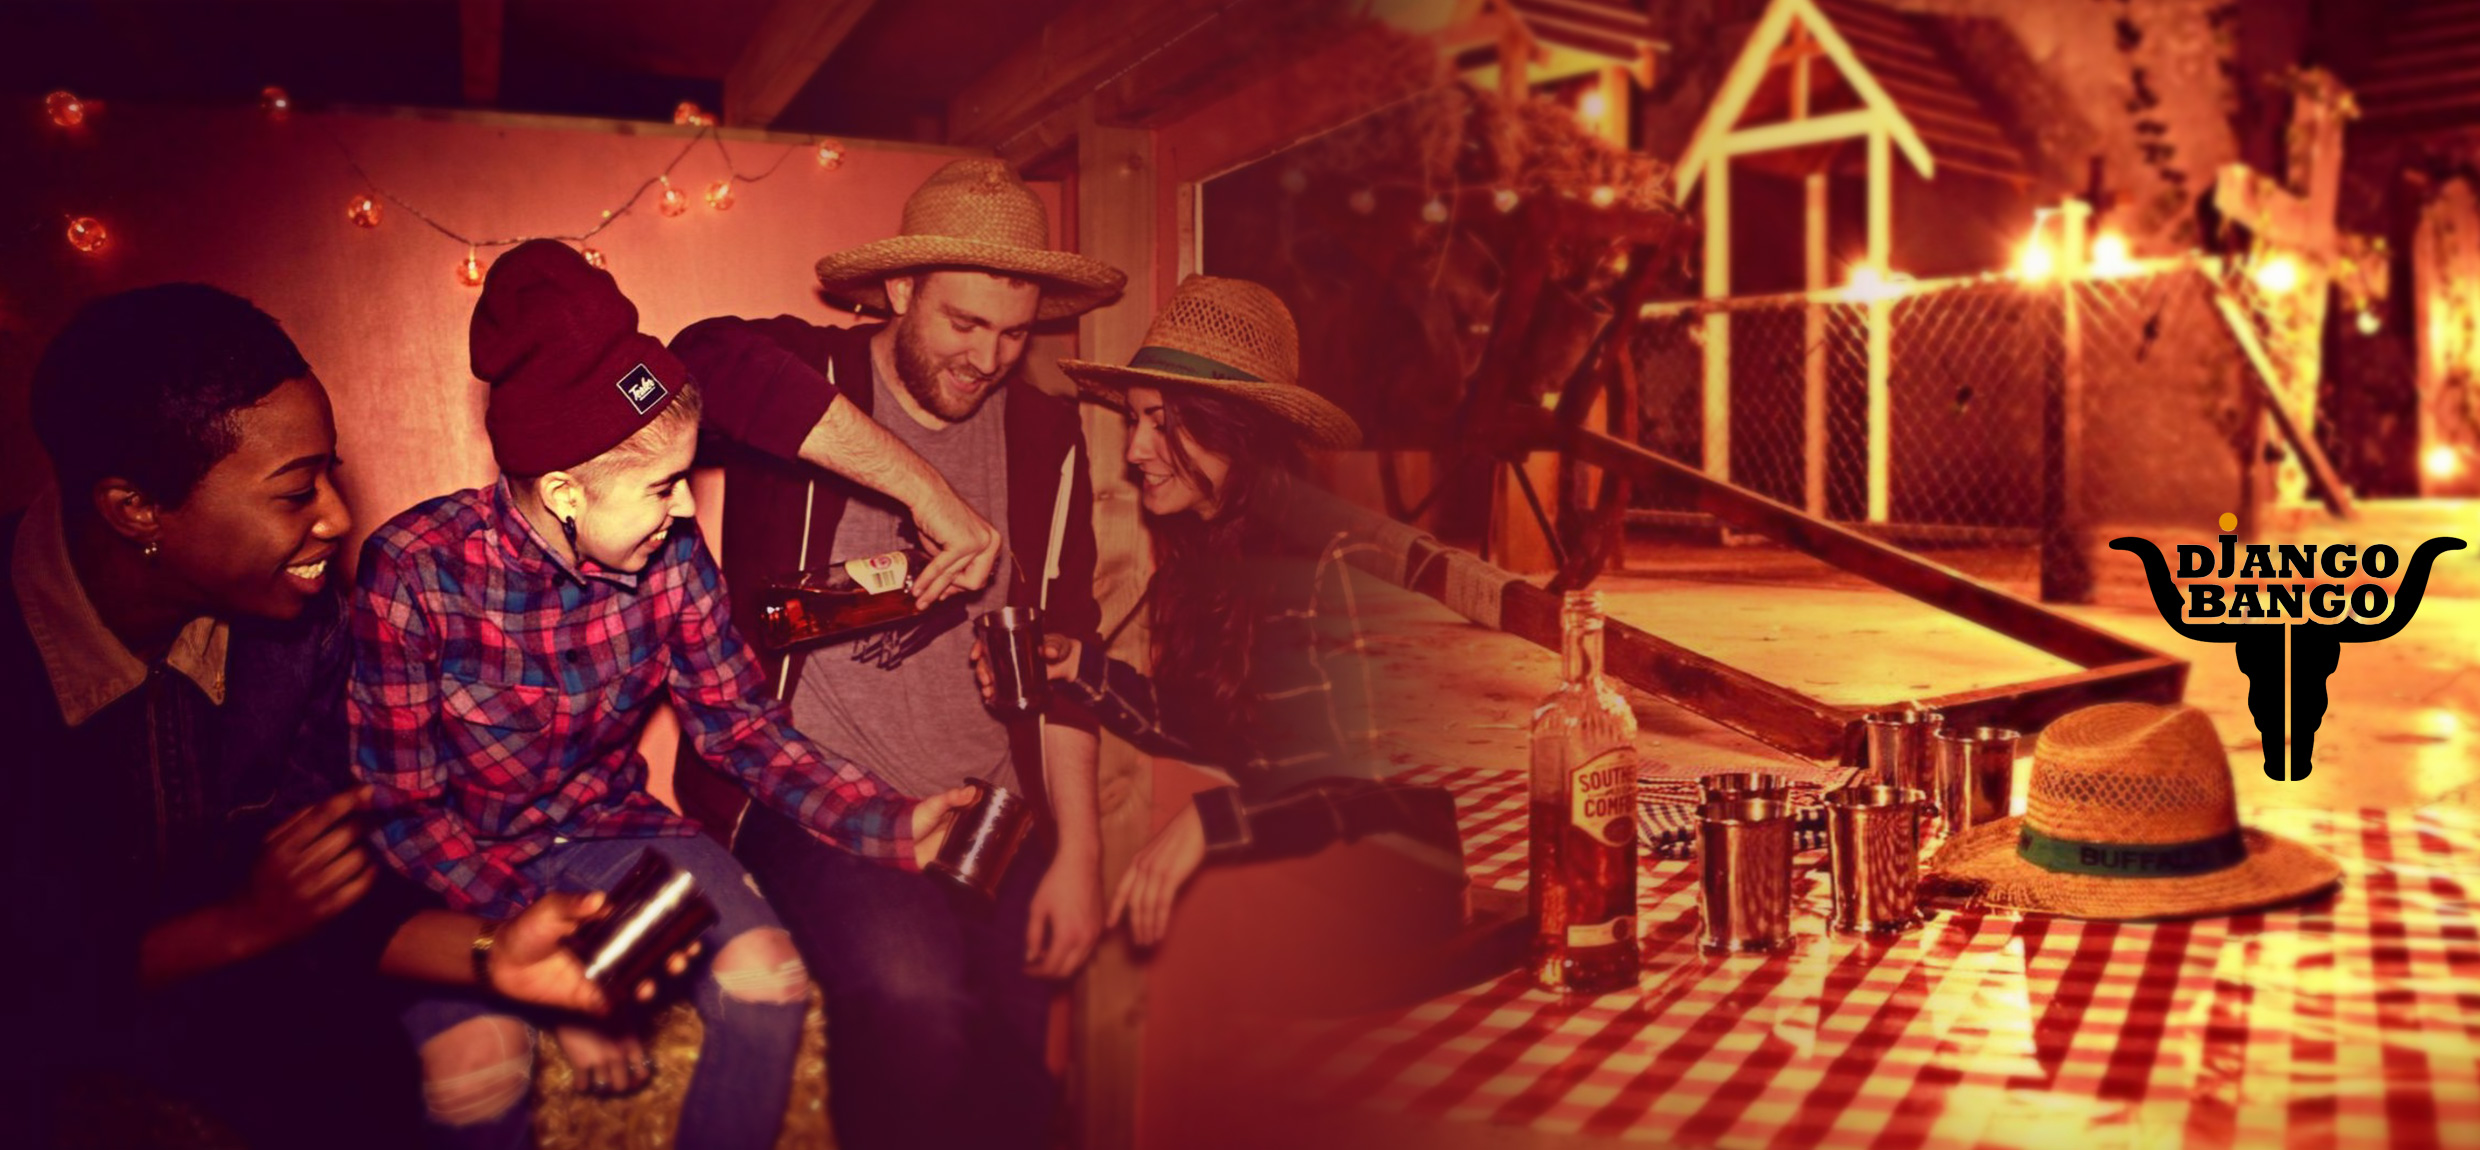 Django Bango - Wild West Popup in East London